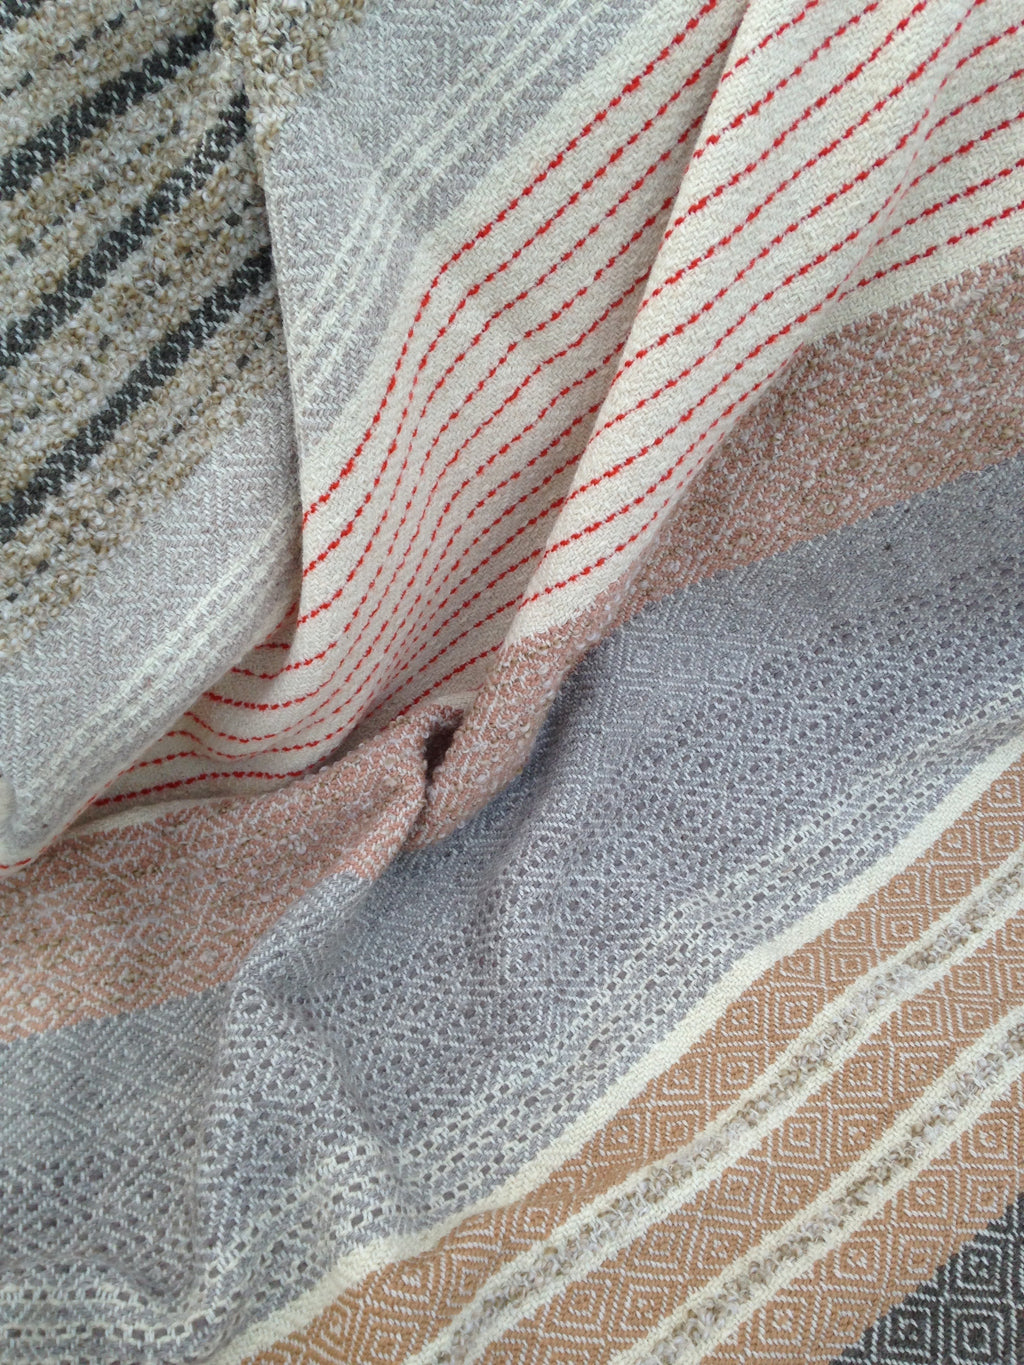 Autumn Warmth - Wool Blanket